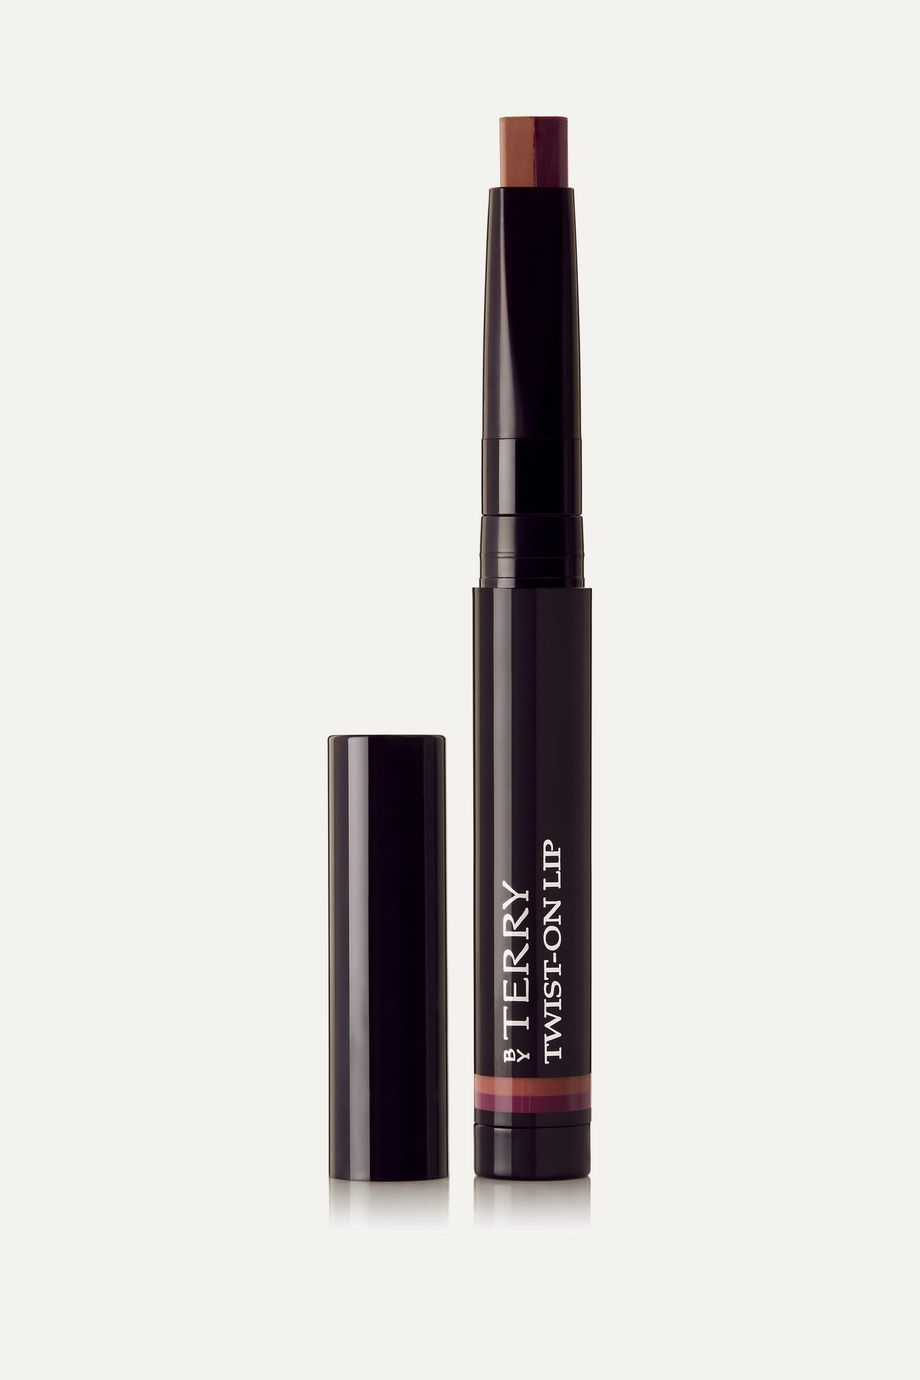 BY TERRY Twist-On Lip - Nude & Burgundy 6